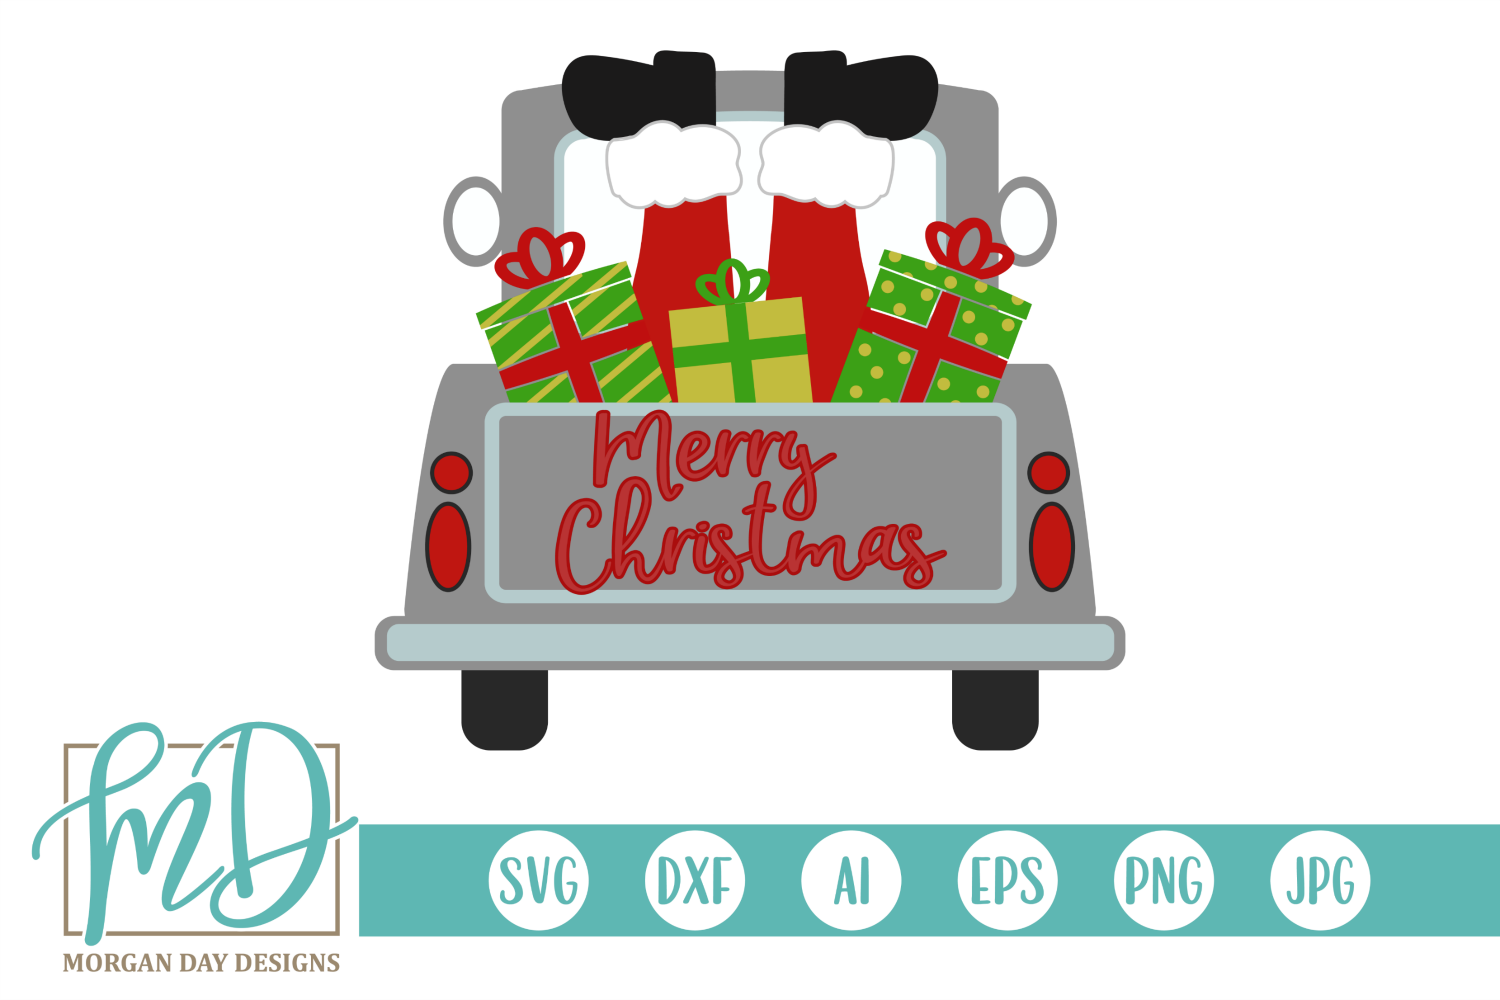 Download Free Merry Christmas Truck With Sants Graphic By Morgan Day Designs for Cricut Explore, Silhouette and other cutting machines.